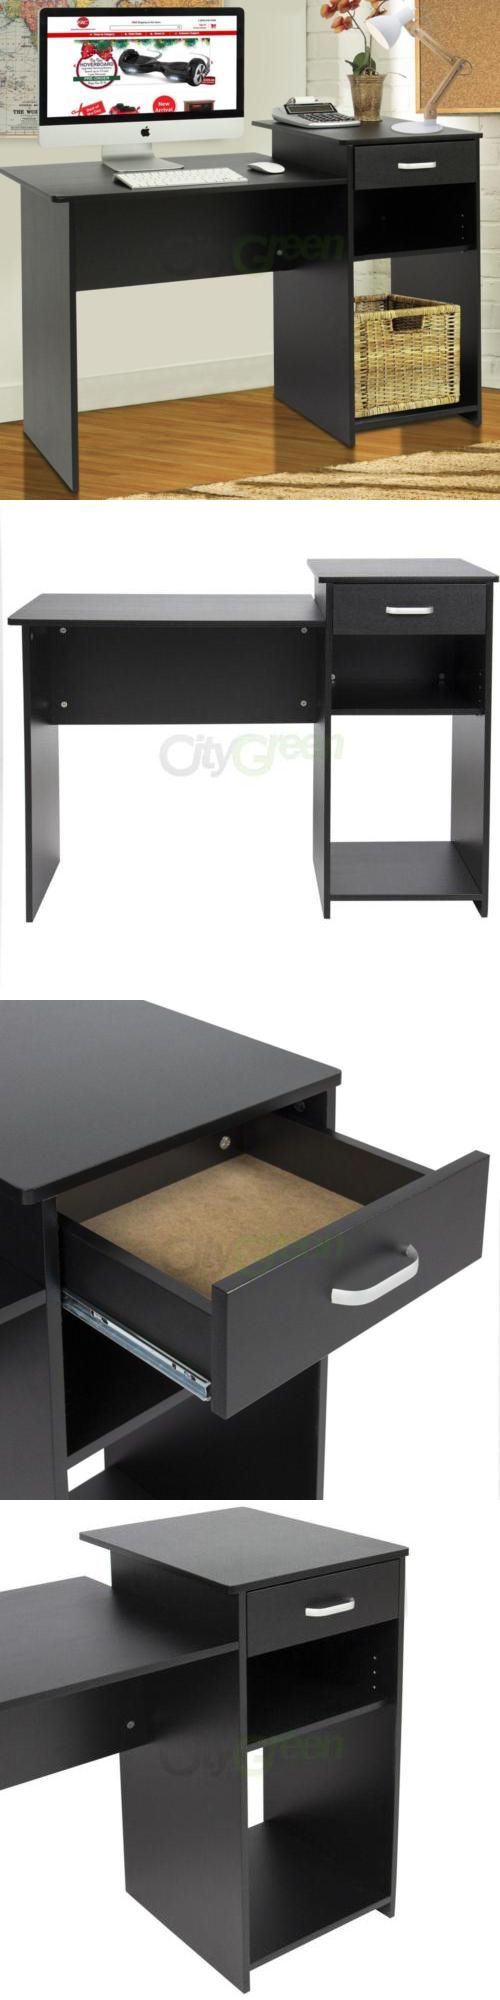 Office Furniture: Computer Desk Study Work Home Office Workstation Pc Laptop Table Furniture Black -> BUY IT NOW ONLY: $51.08 on eBay!